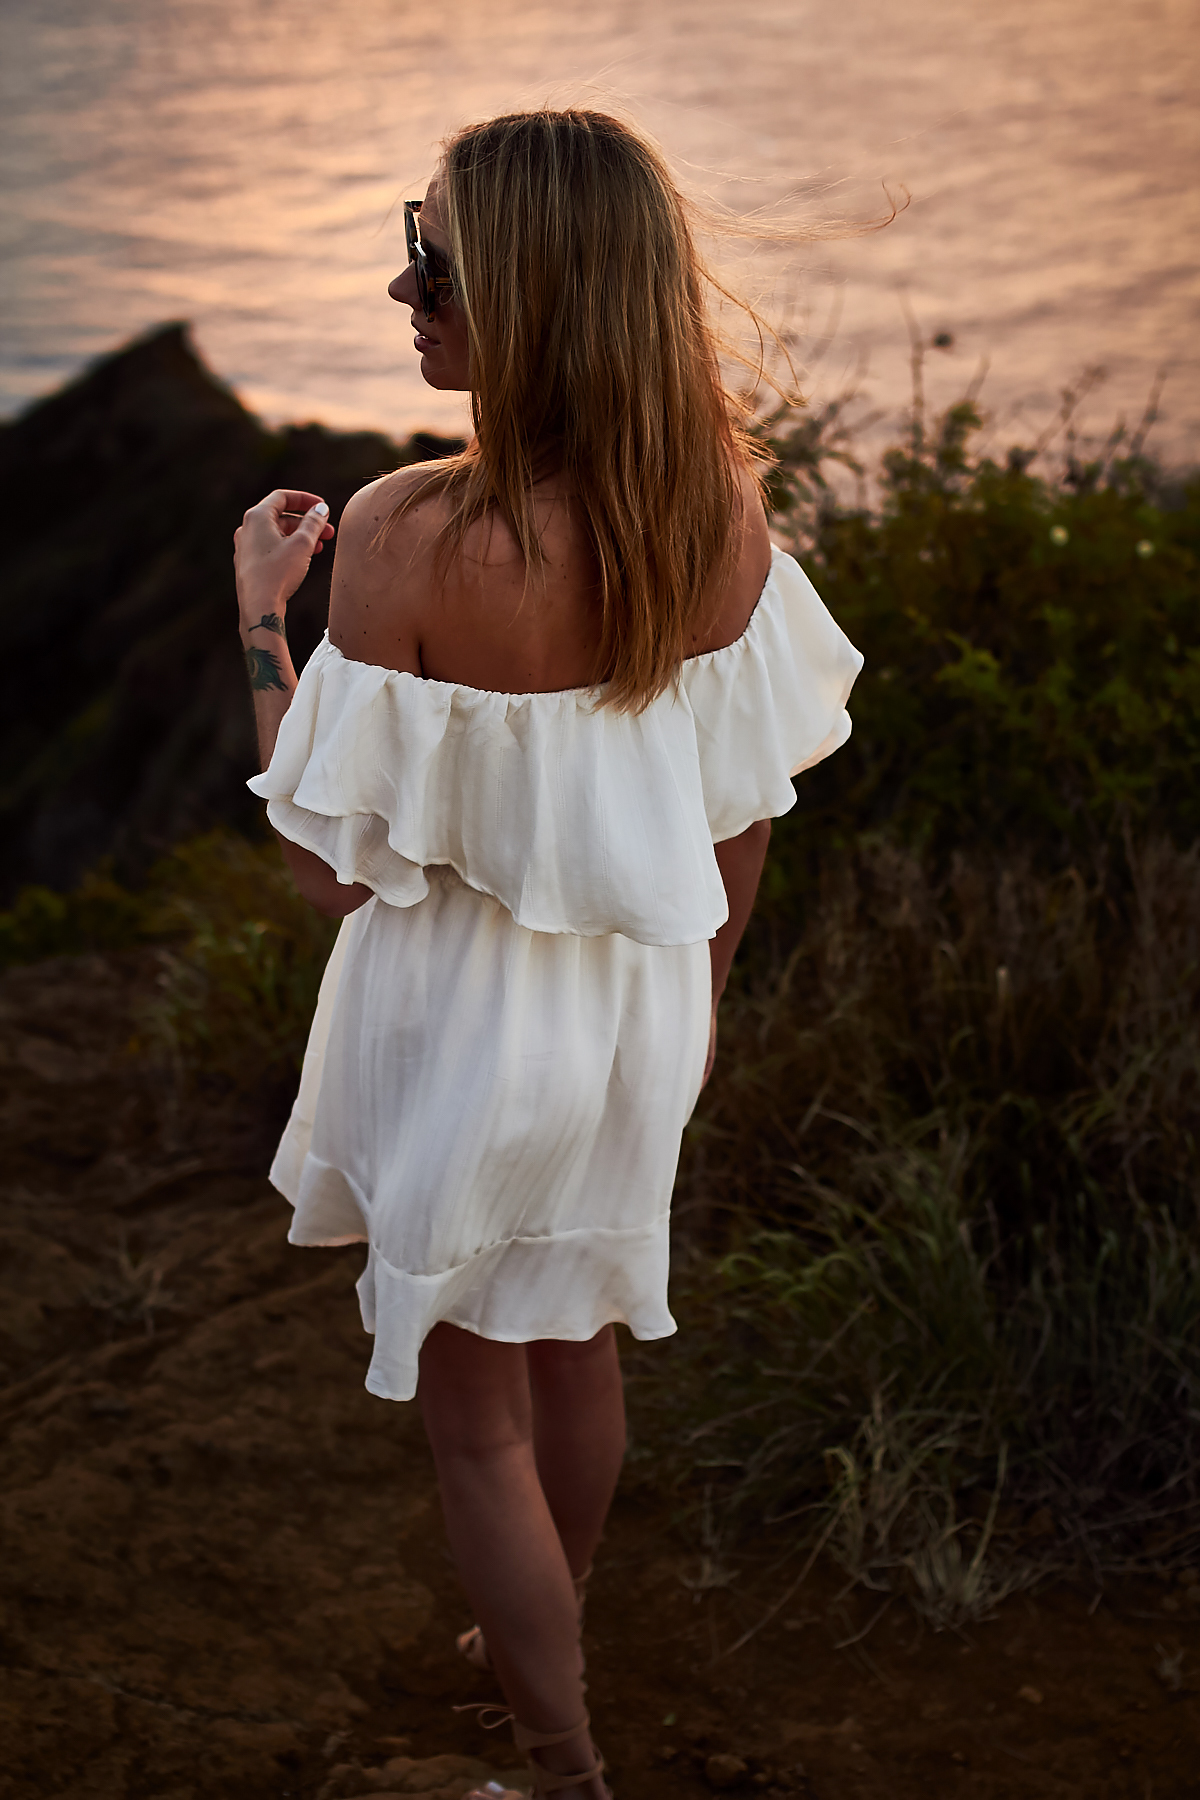 Tropical Vacation, white-off-the-shoulder-dress, Hawaii, Oahu, Koko Head, Sunrise